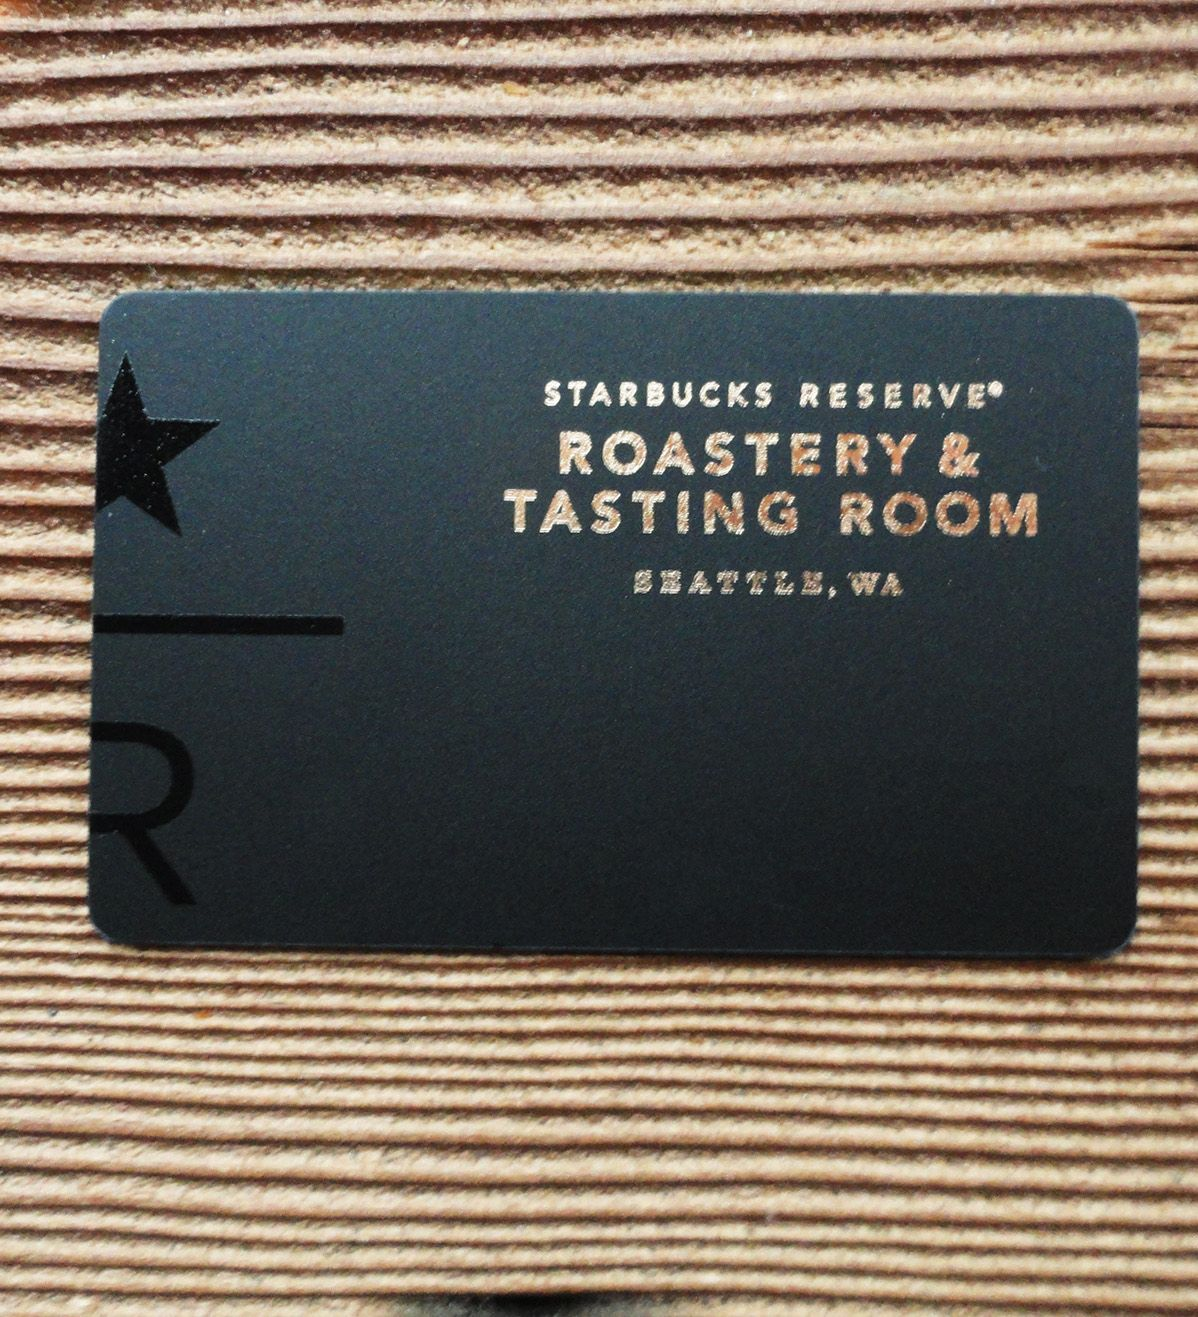 Even The Card Smells Like Freshly Ground Coffee Beans. The